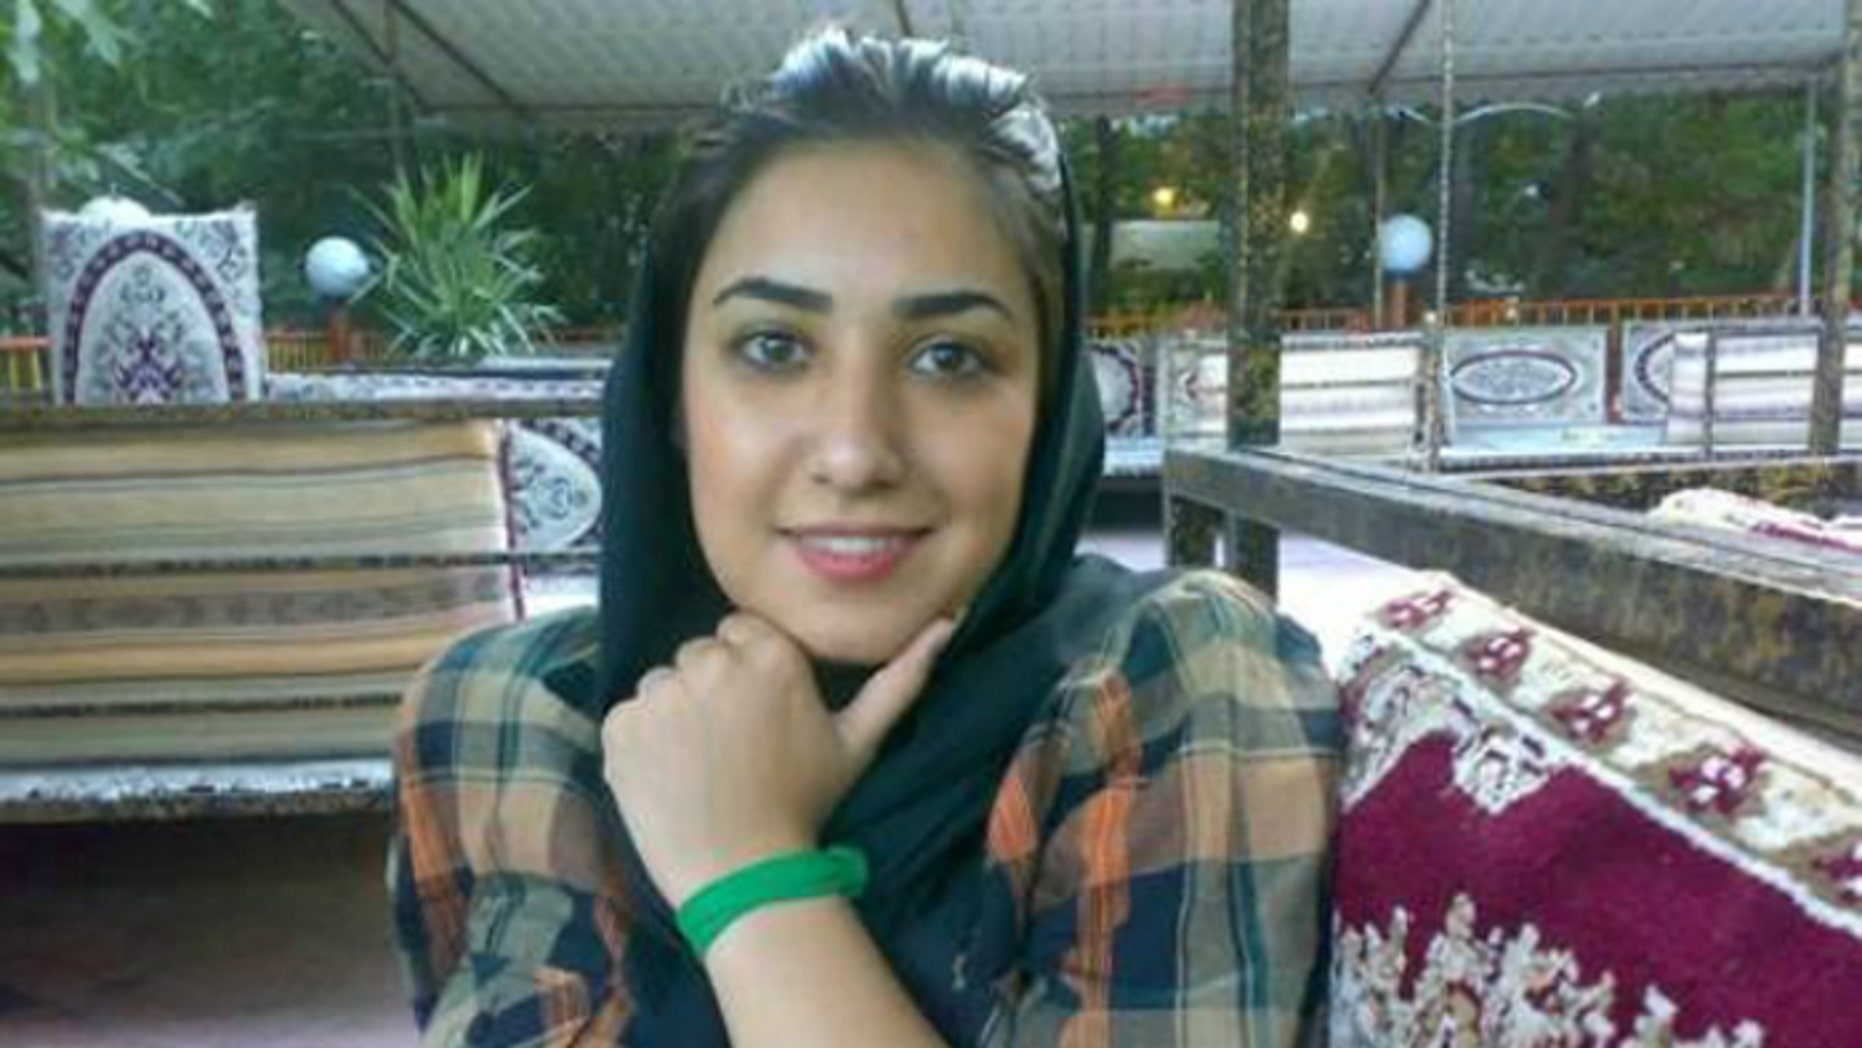 Atena Farghadani is facing a dozen years behind bars for drawing cartoons. (Justice for Iran)